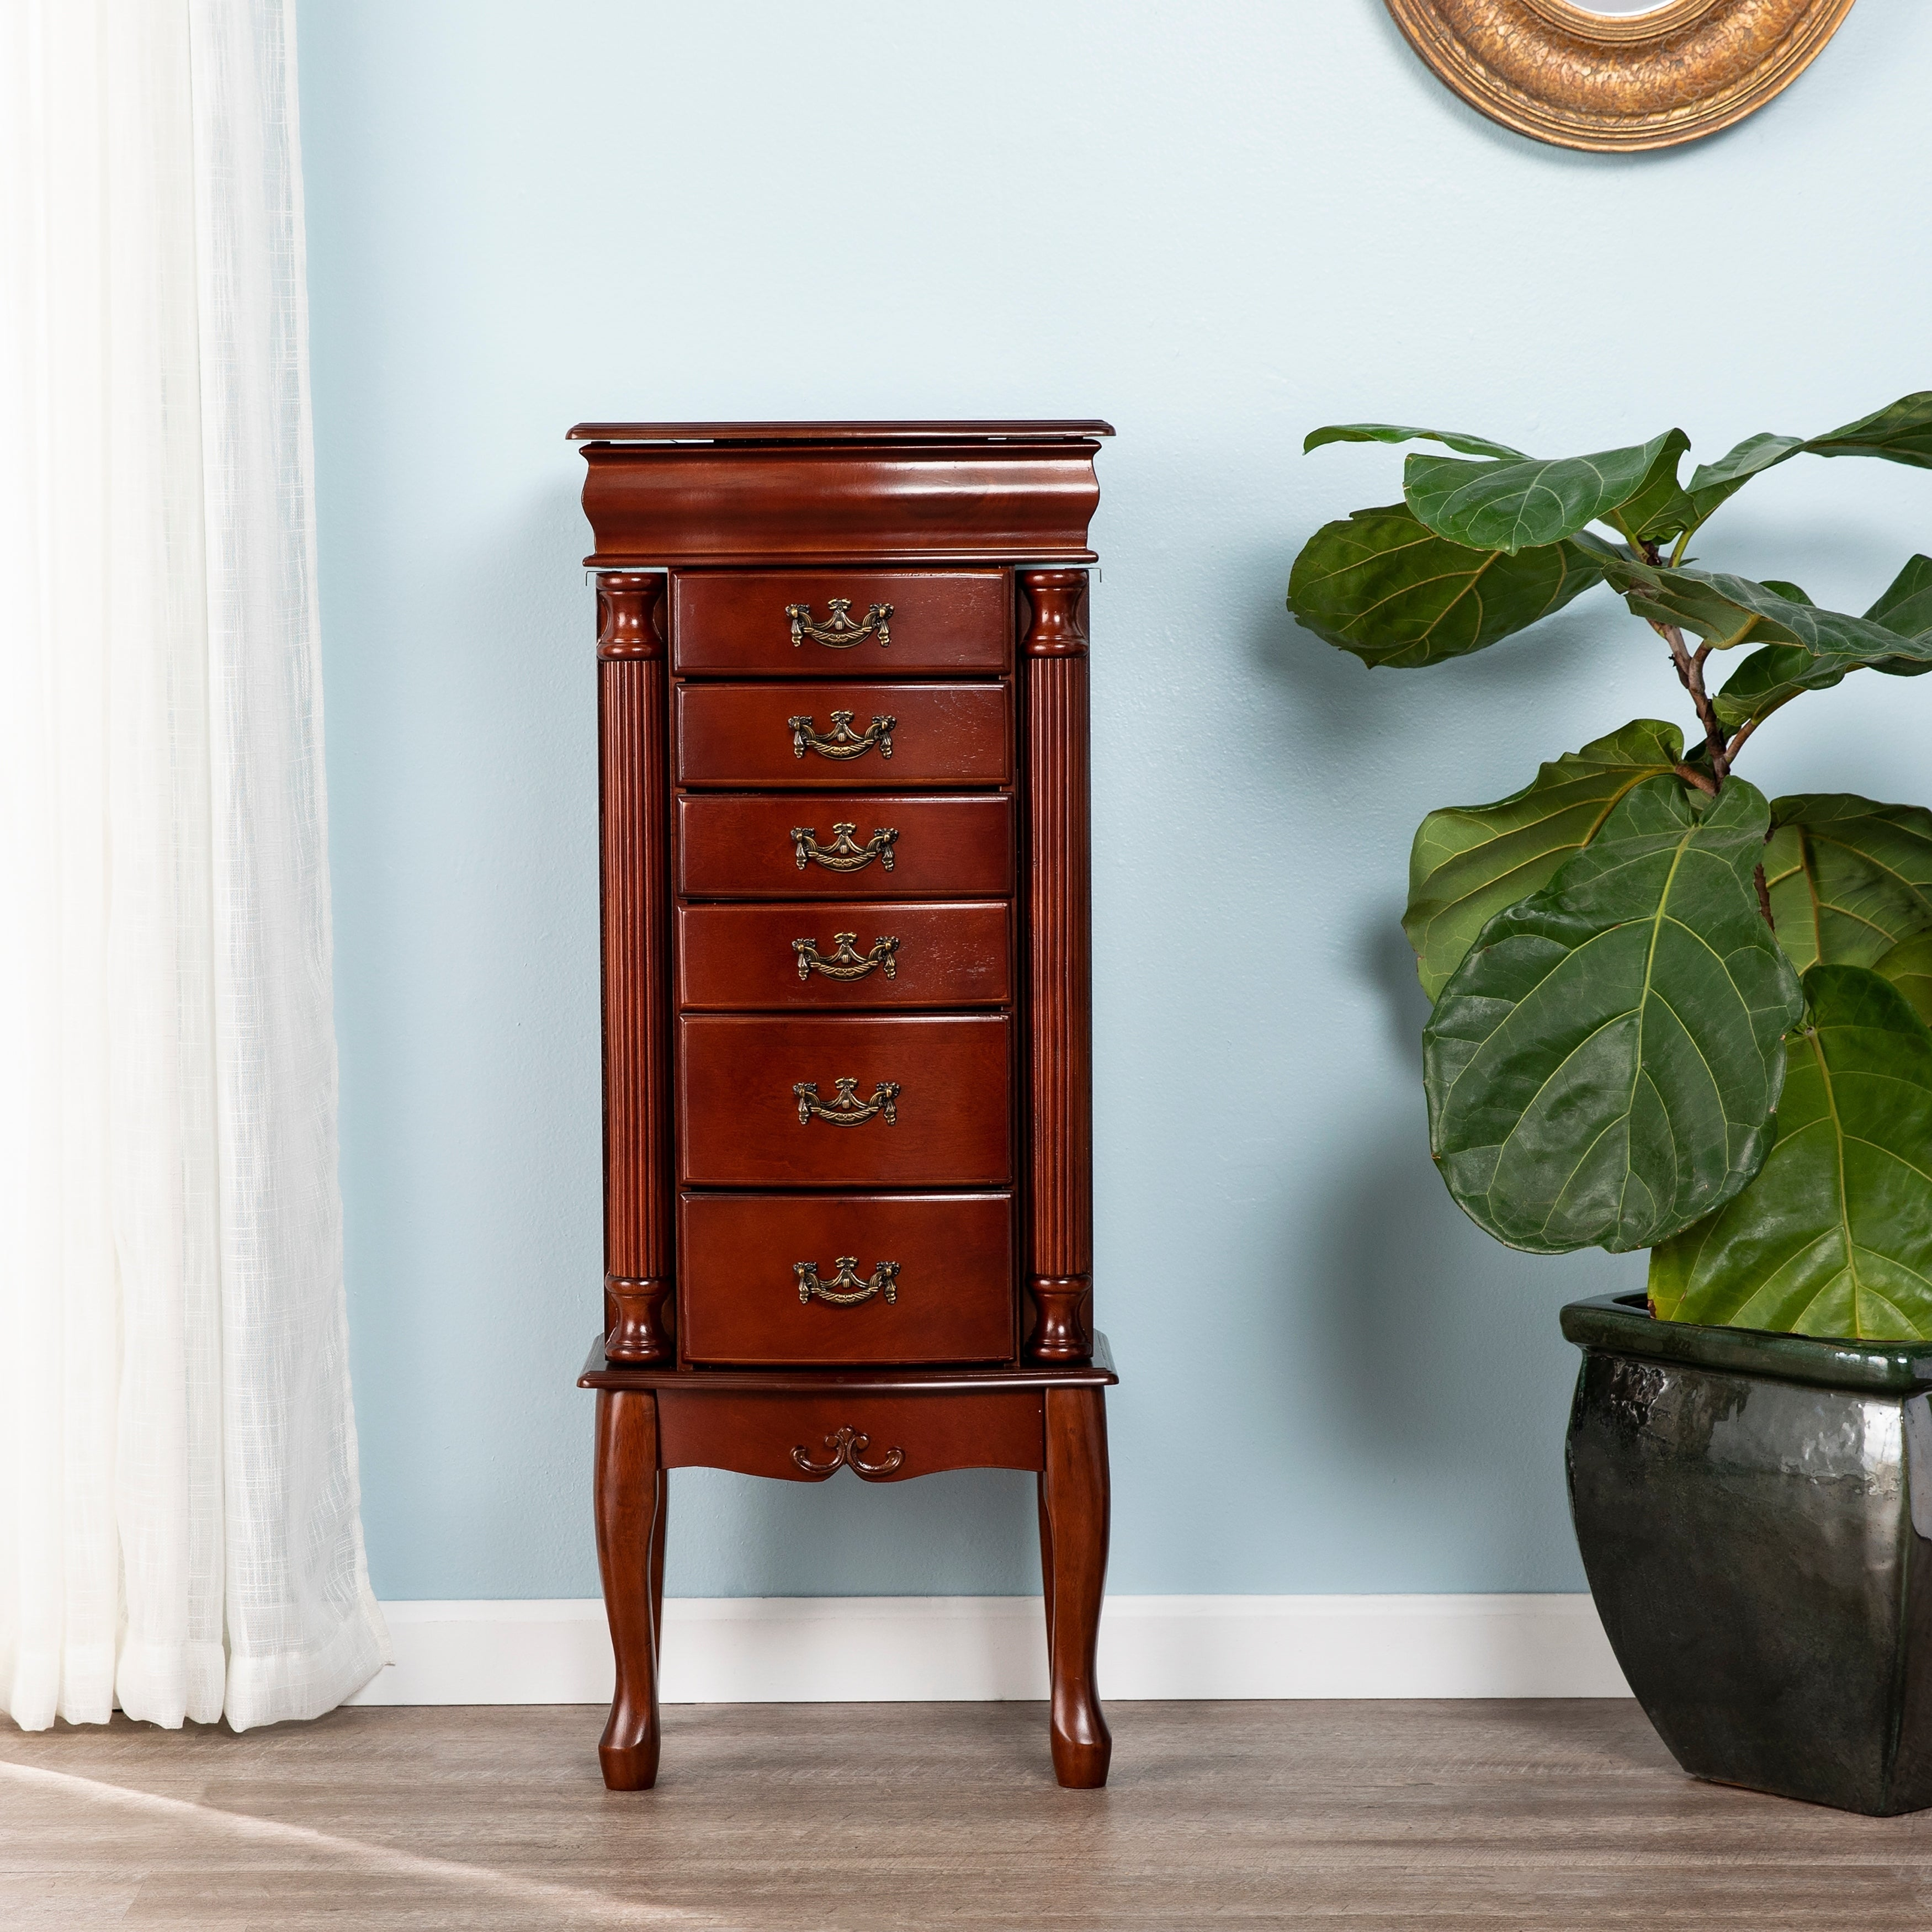 Backbone Pet Harper Blvd Mahogany Medium Jewelry Armoire,...